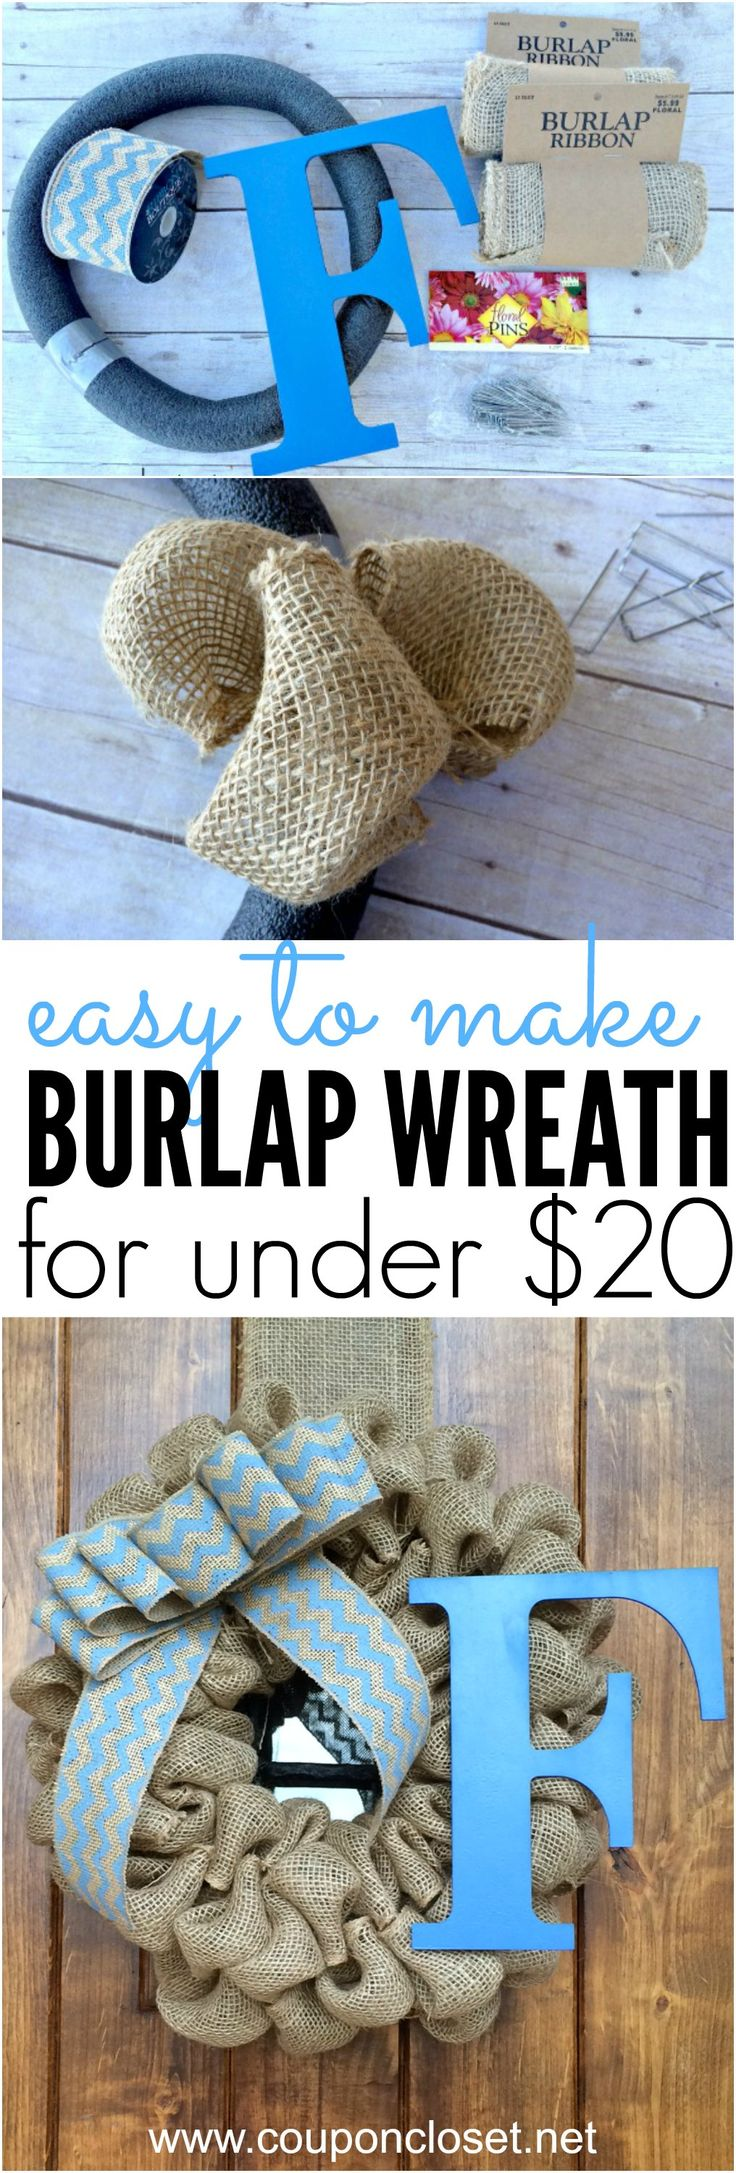 How to Make Burlap Wreath for about only $15. This burlap wreath is super easy to make and makes a great gift idea.